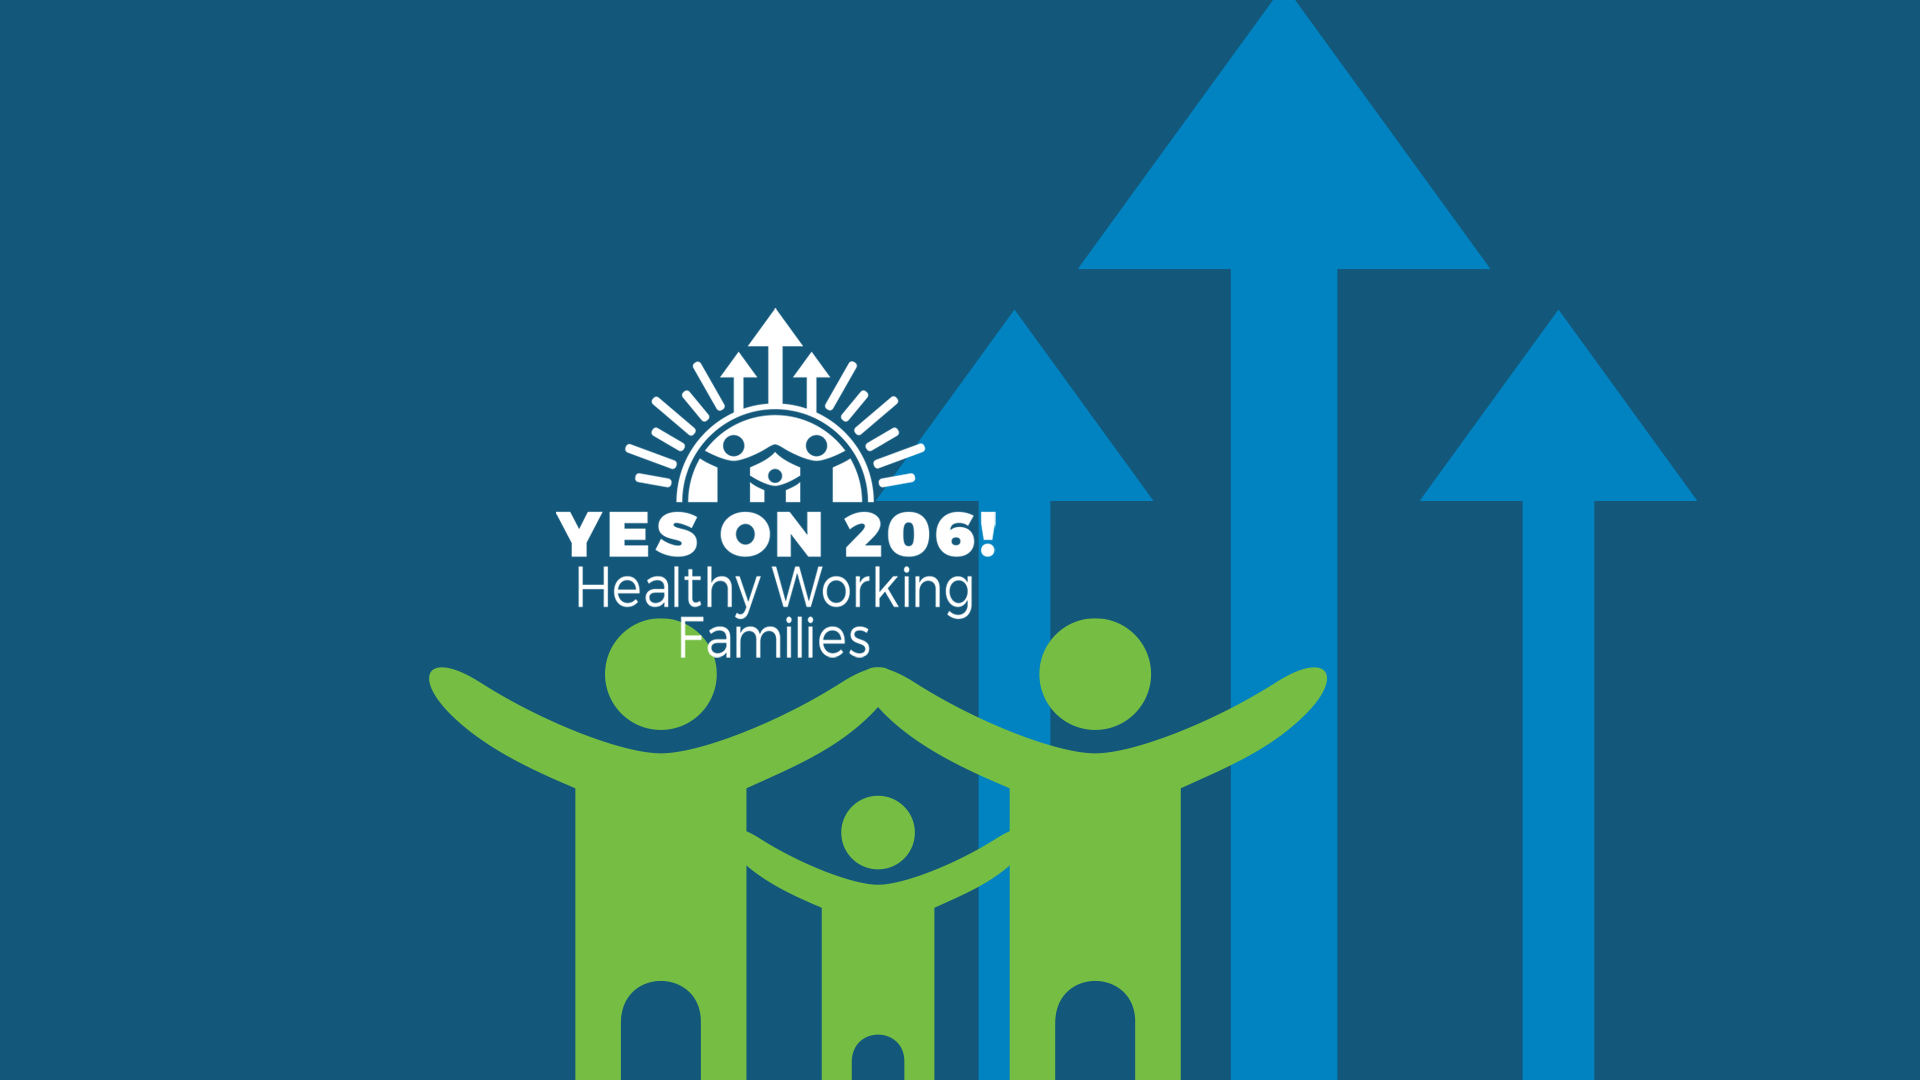 Proposition 206-Healthy Working Families Initiative